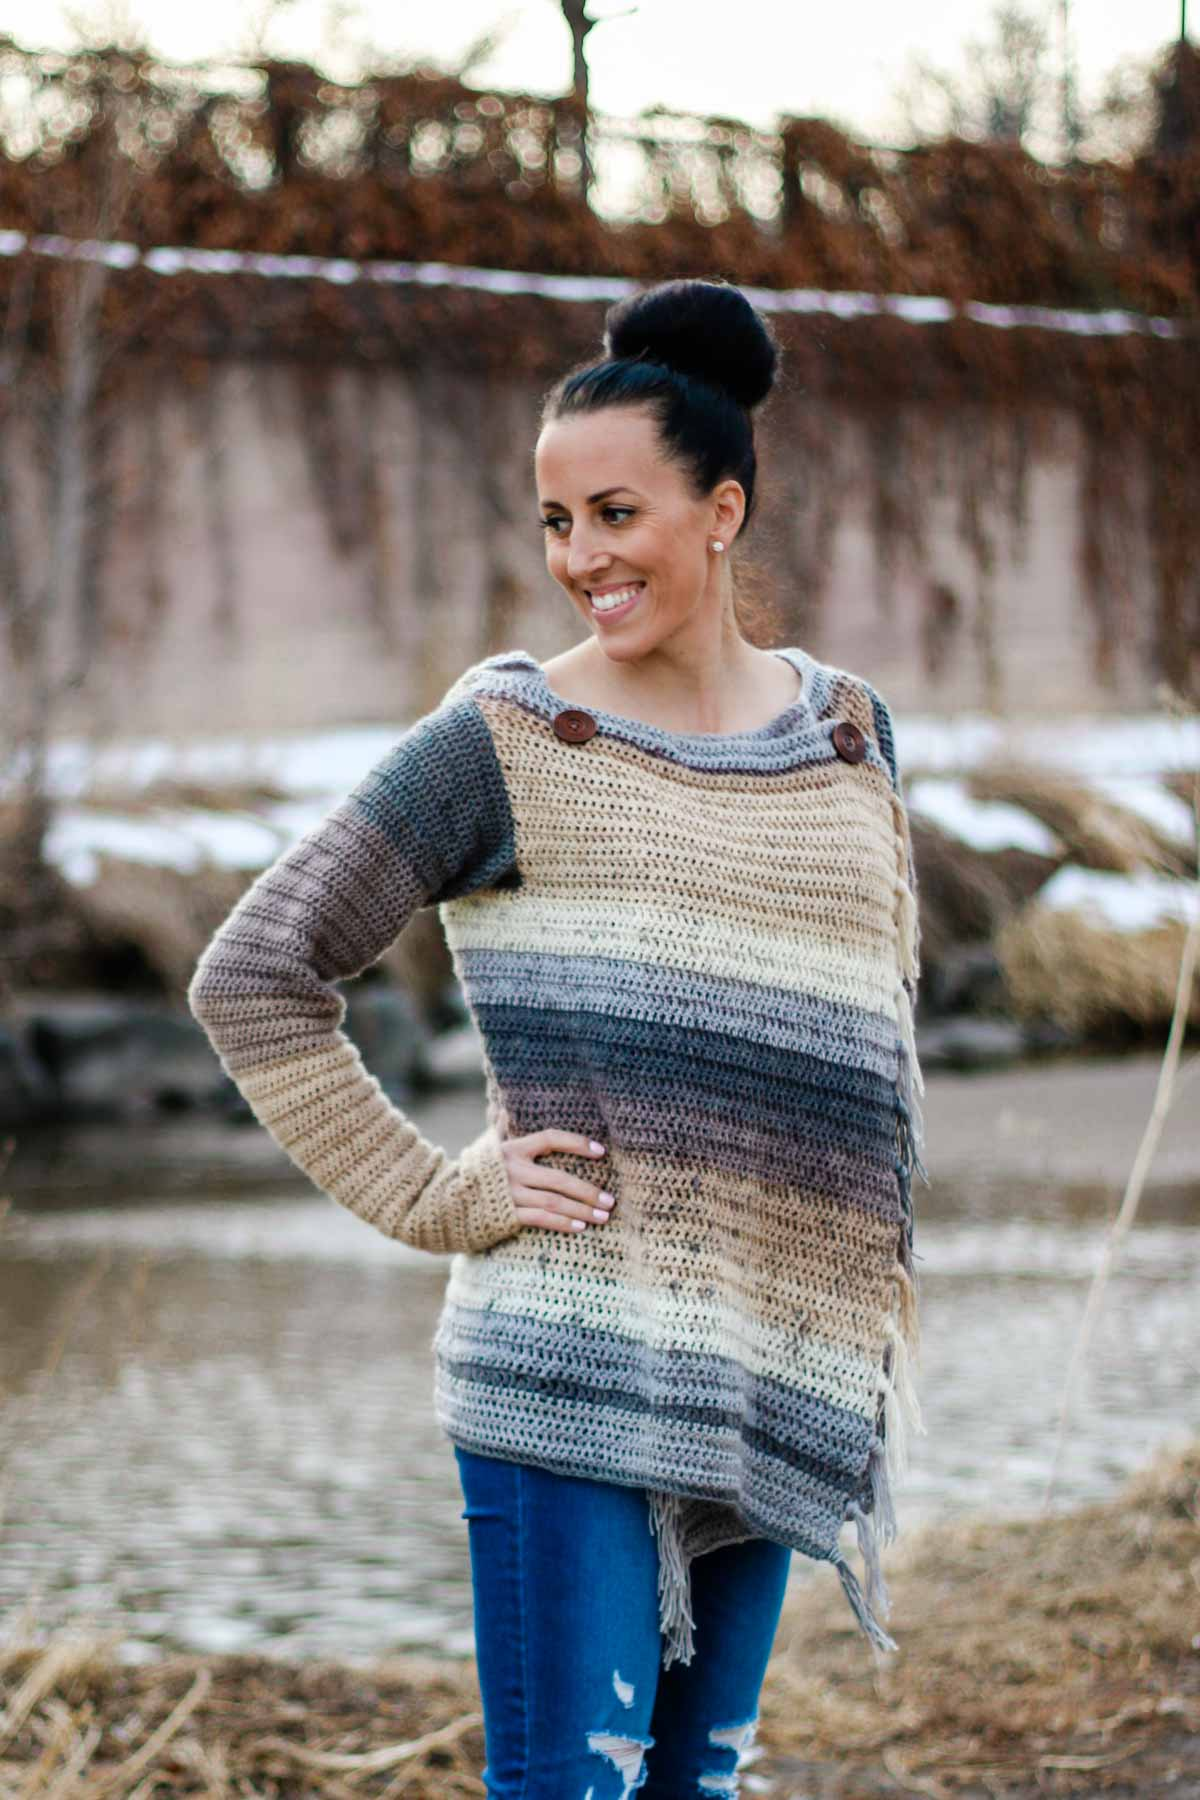 This crochet blanket sweater can button in front to create the look of a pullover or be worn open like a cardigan. Free pattern and tutorial.